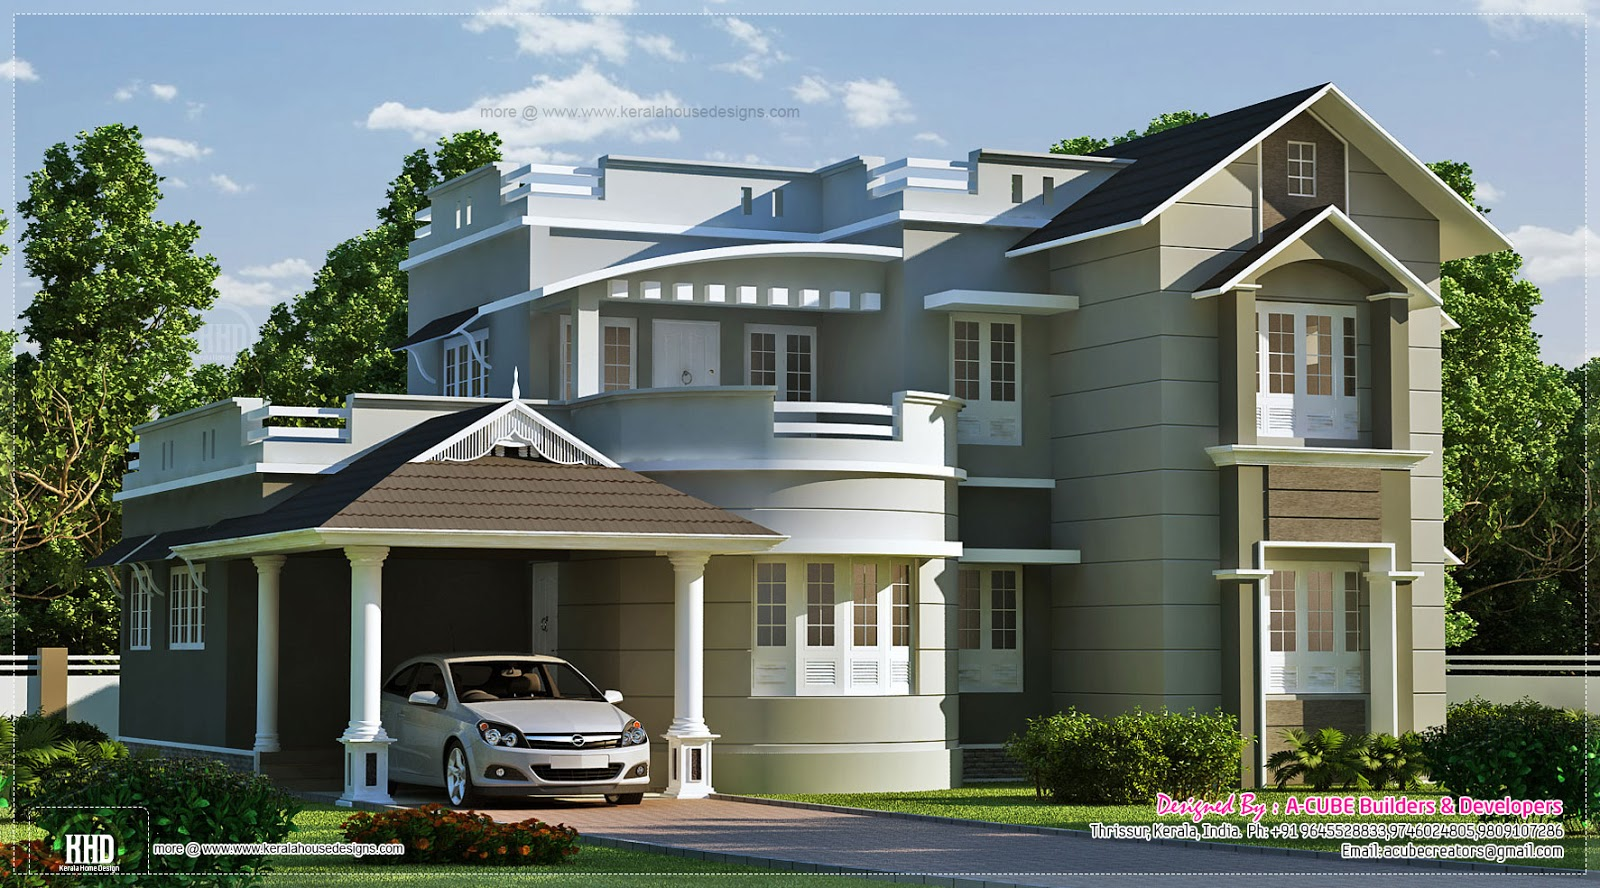 New home design best home decorating ideas for Architecture house design ideas